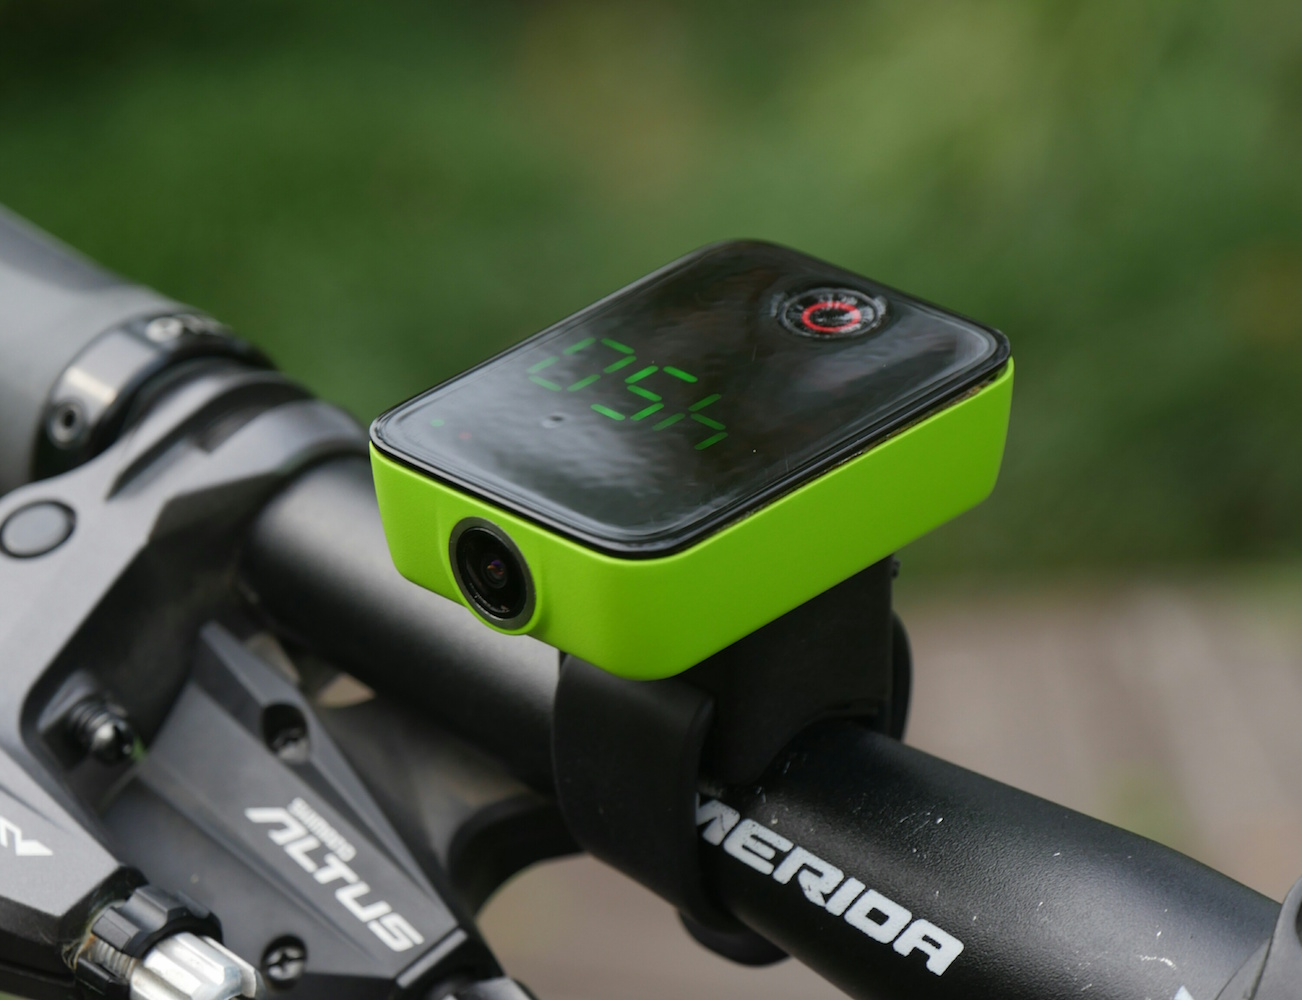 Camile+%26%238211%3B+Camera+%26amp%3B+GPS+For+Cycling+%26amp%3B+More